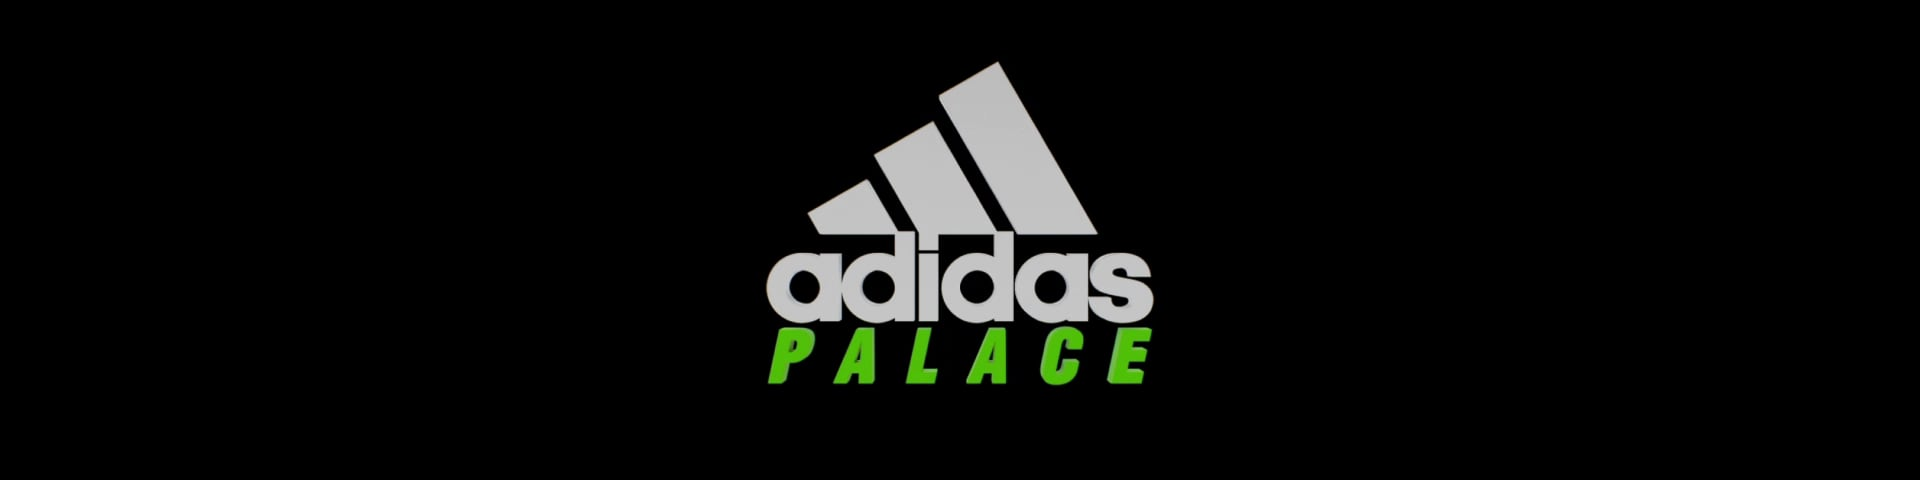 Adidas Adidas Adidas Yeezy Berlin Online Shops & Outlet